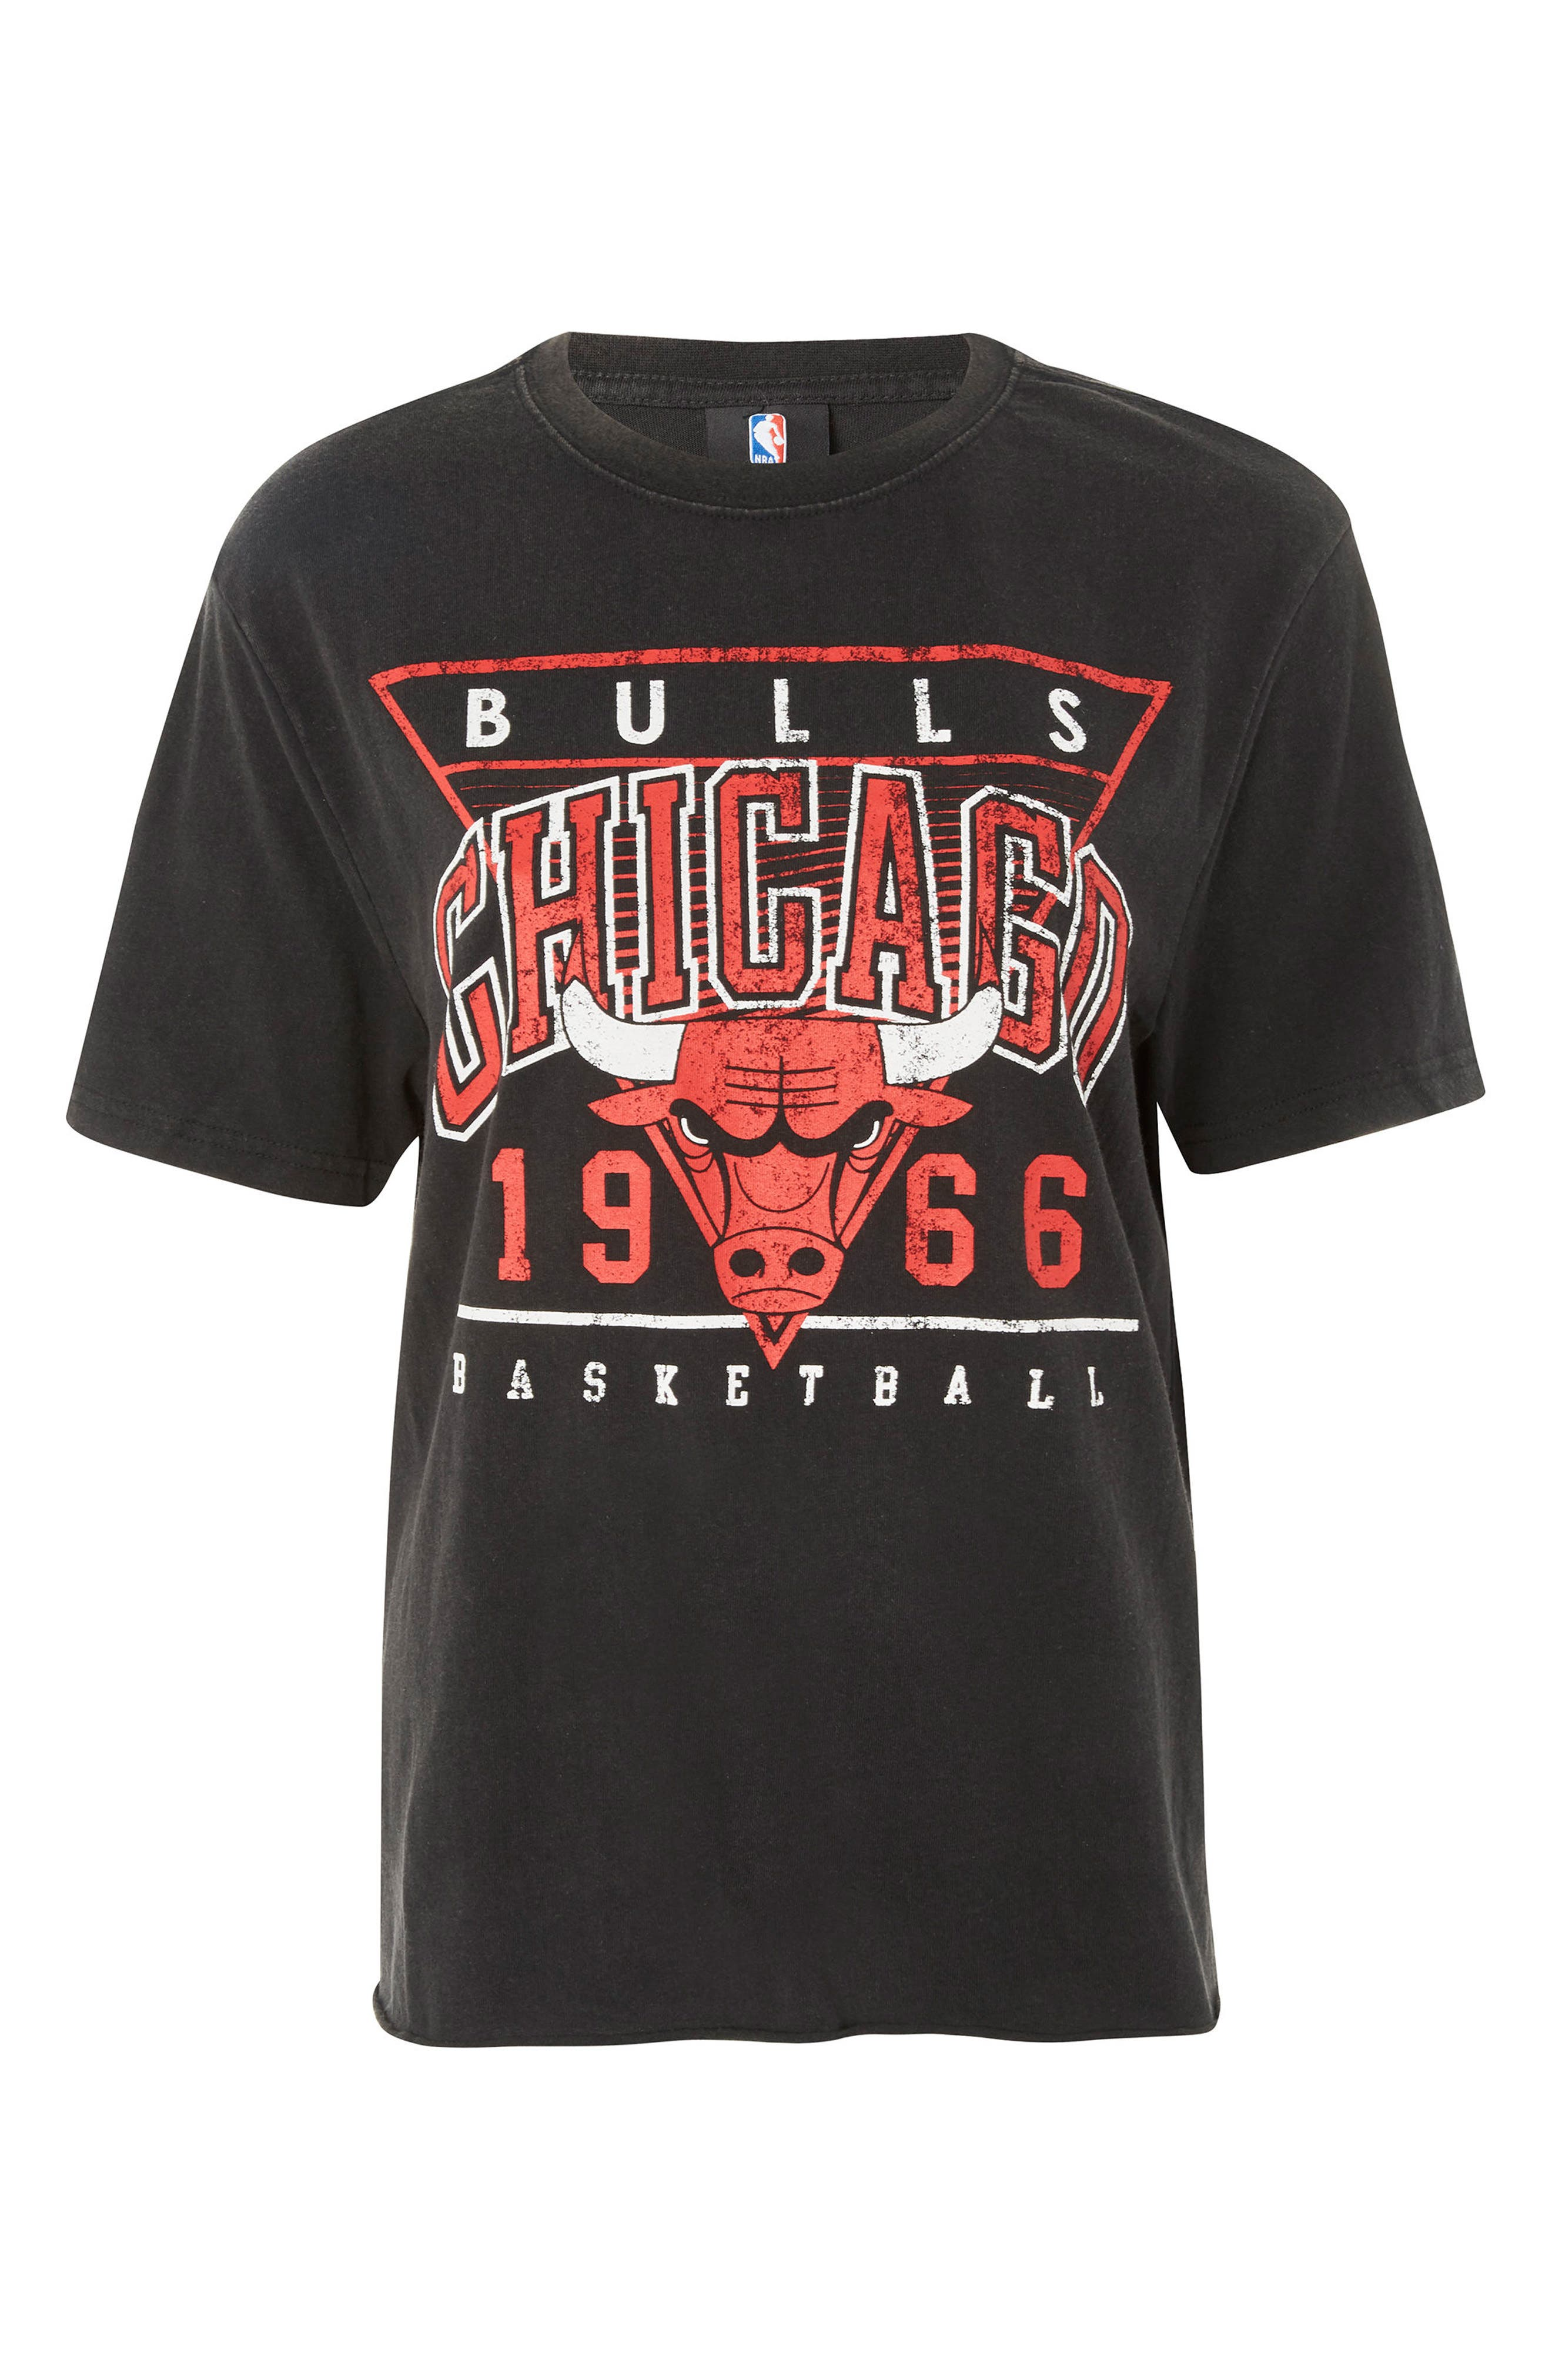 x UNK Chicago Bulls Graphic Tee,                             Alternate thumbnail 3, color,                             002